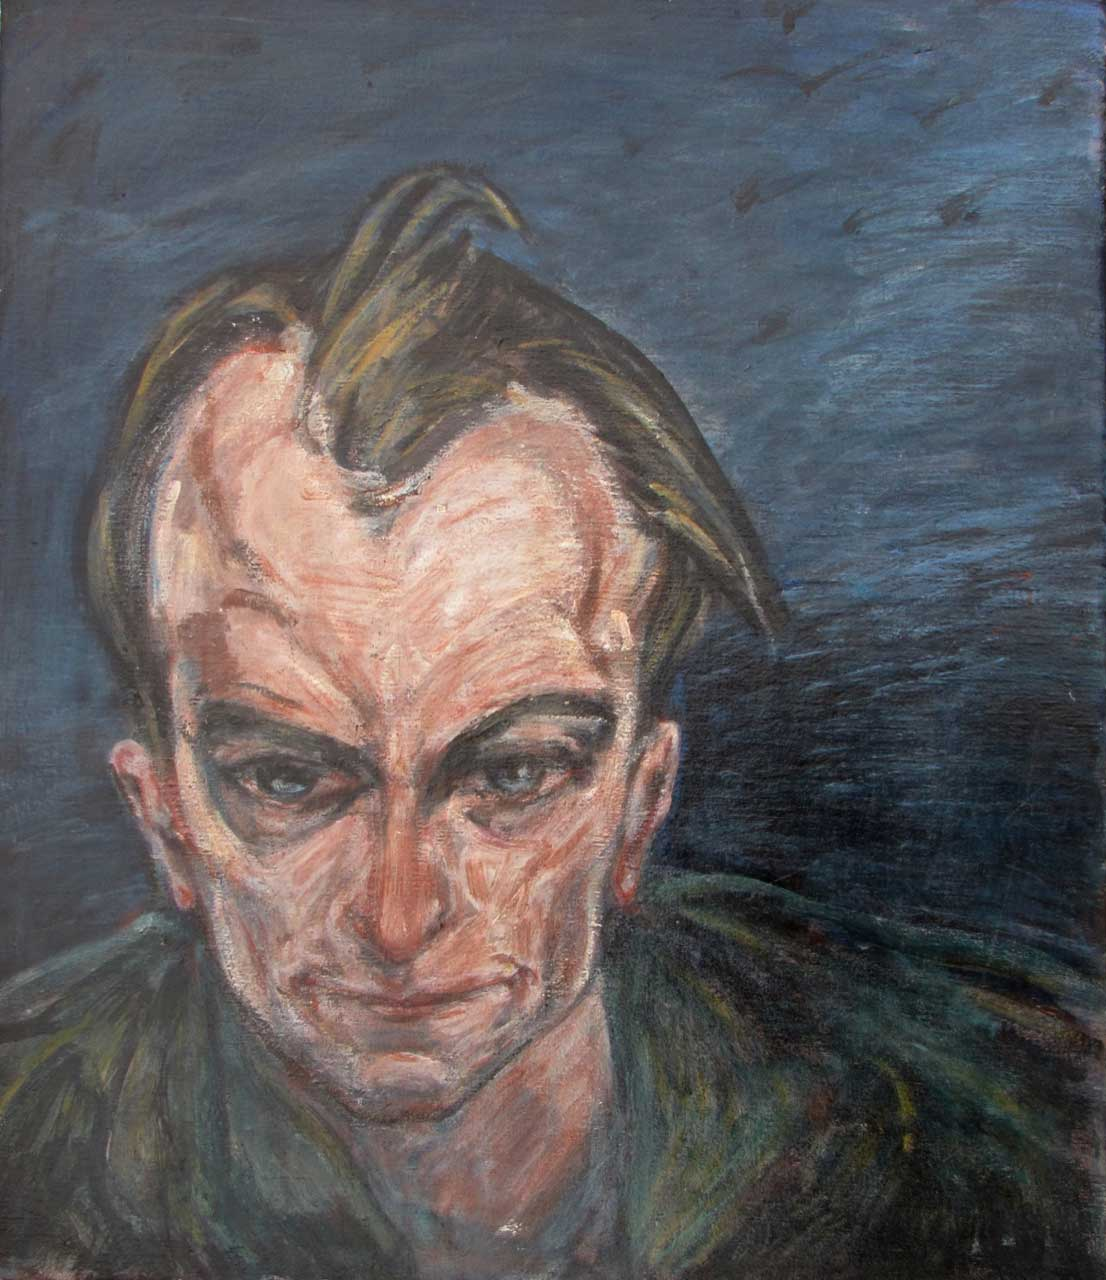 1986 Self portrait